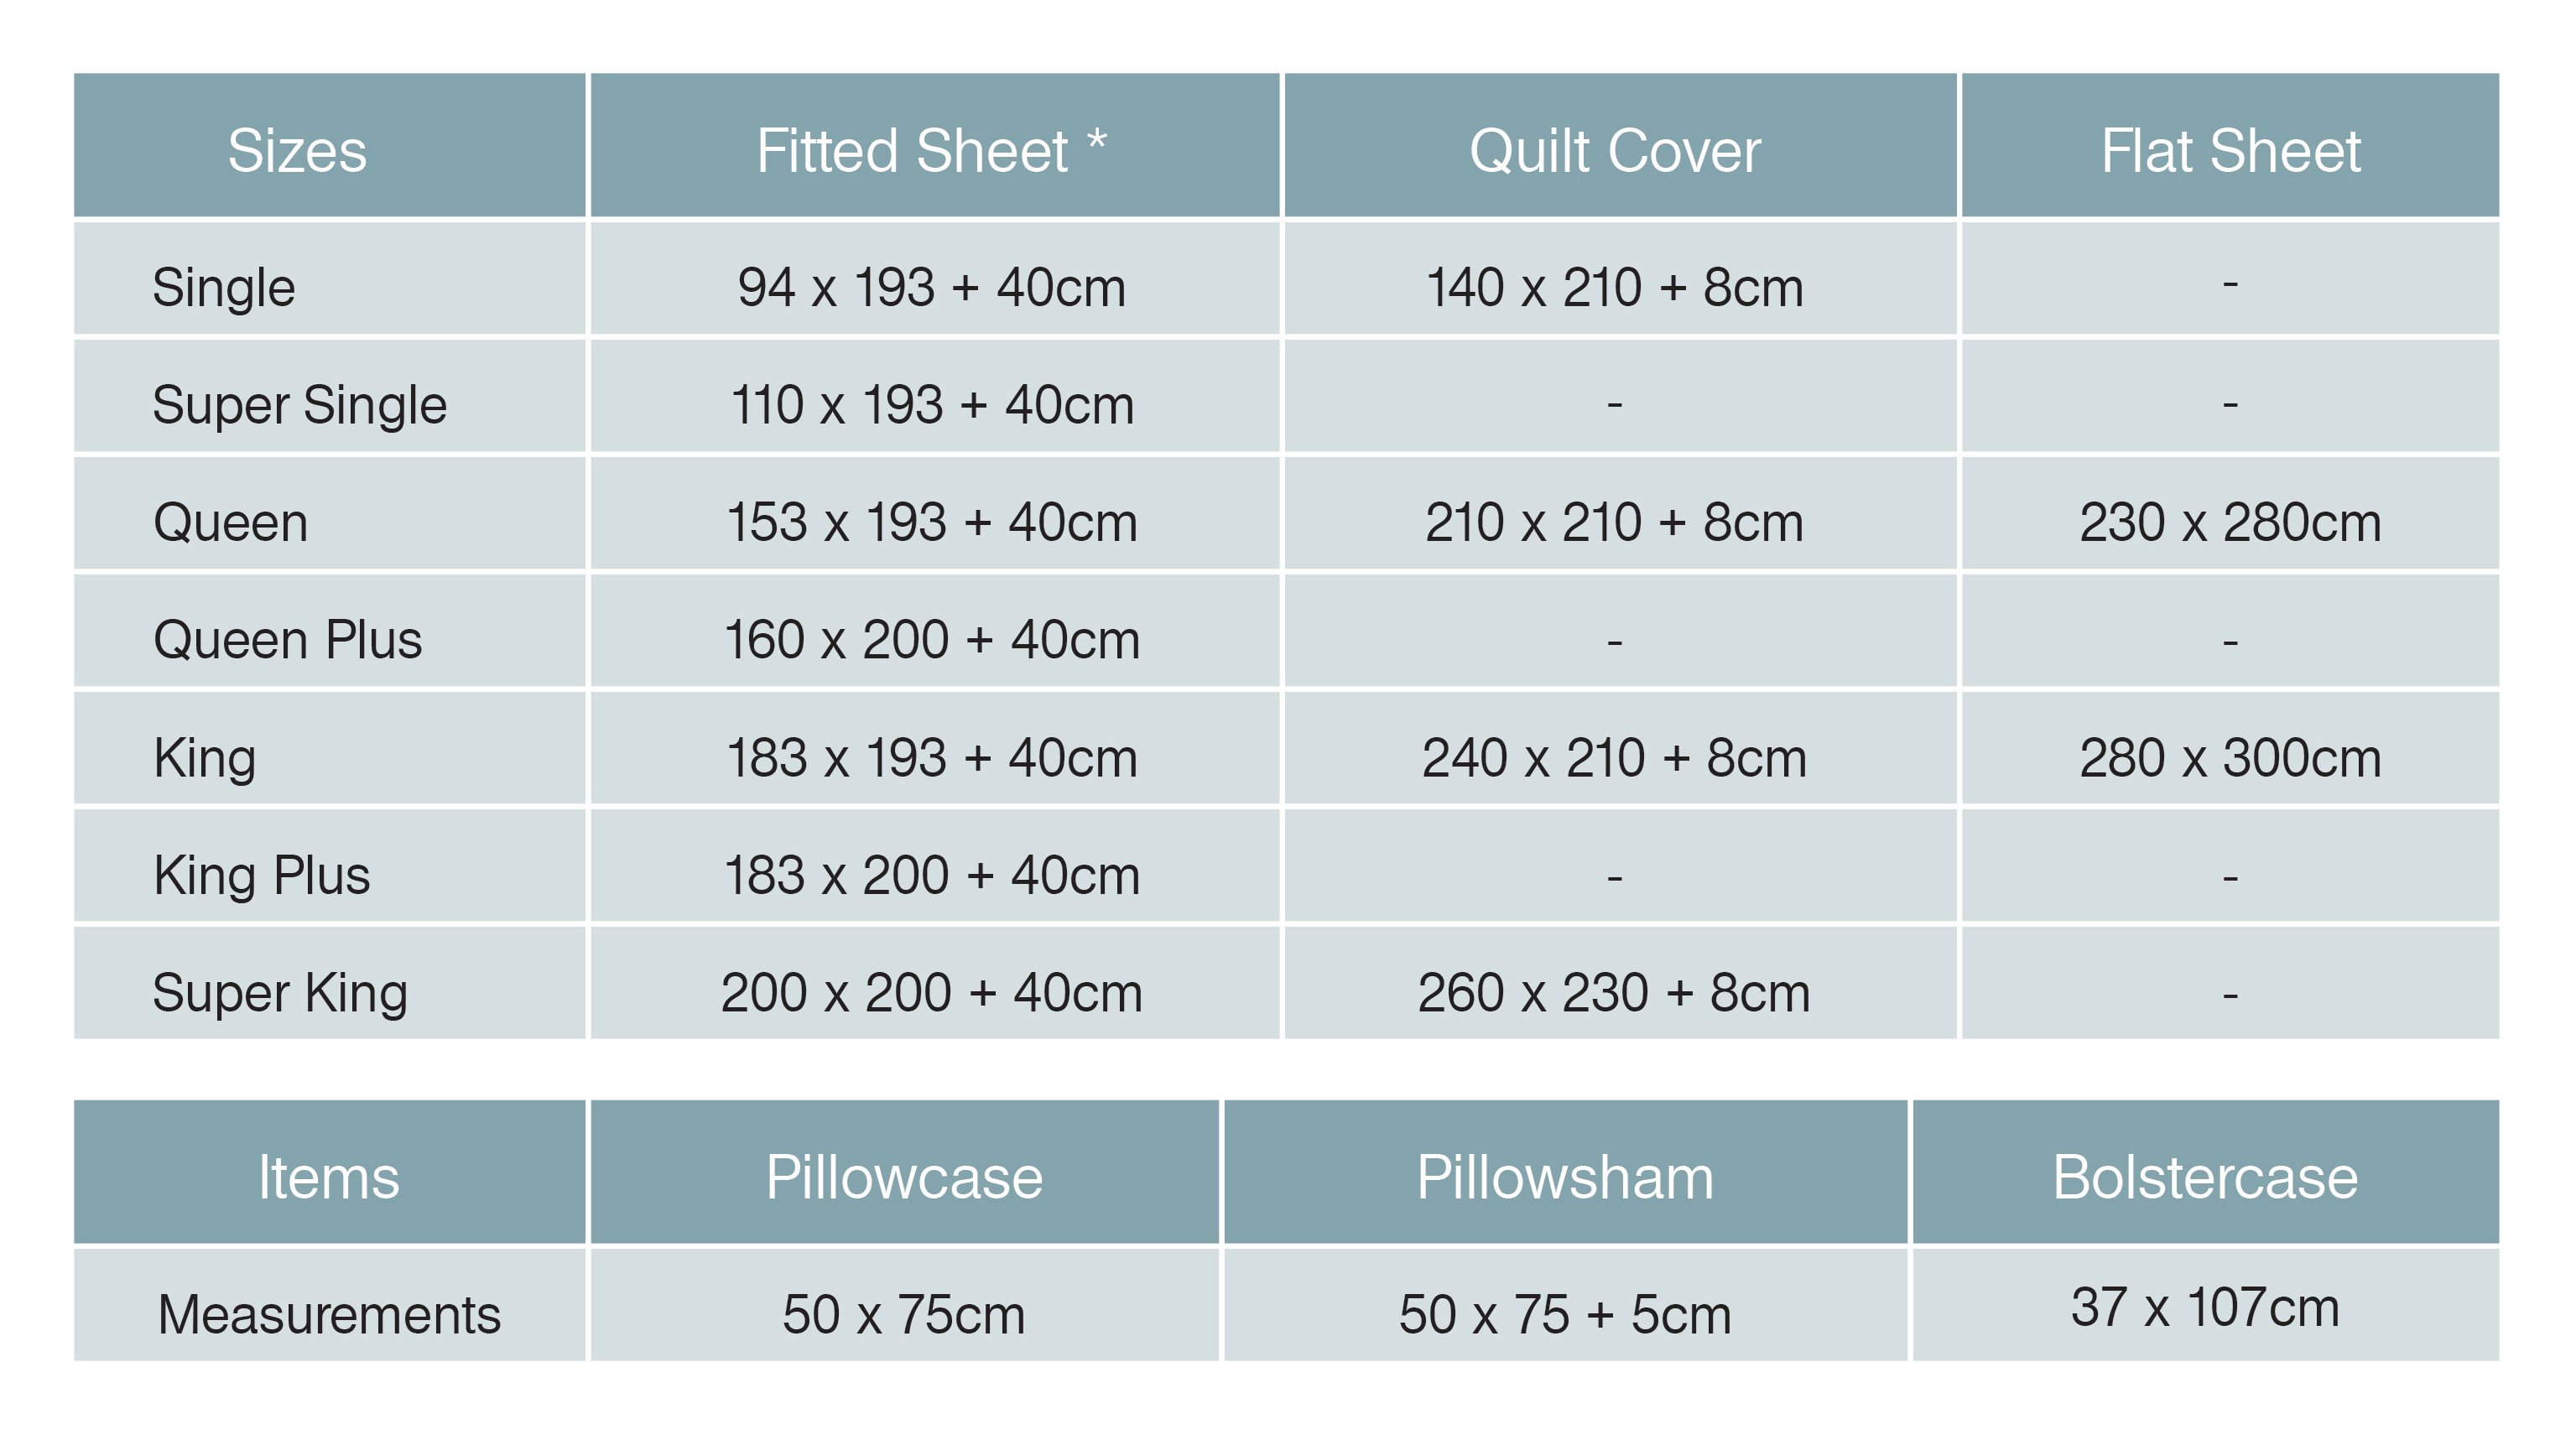 Bed Sheet Amp Bedding Sizes Amp Measurements Bedorigin Com My